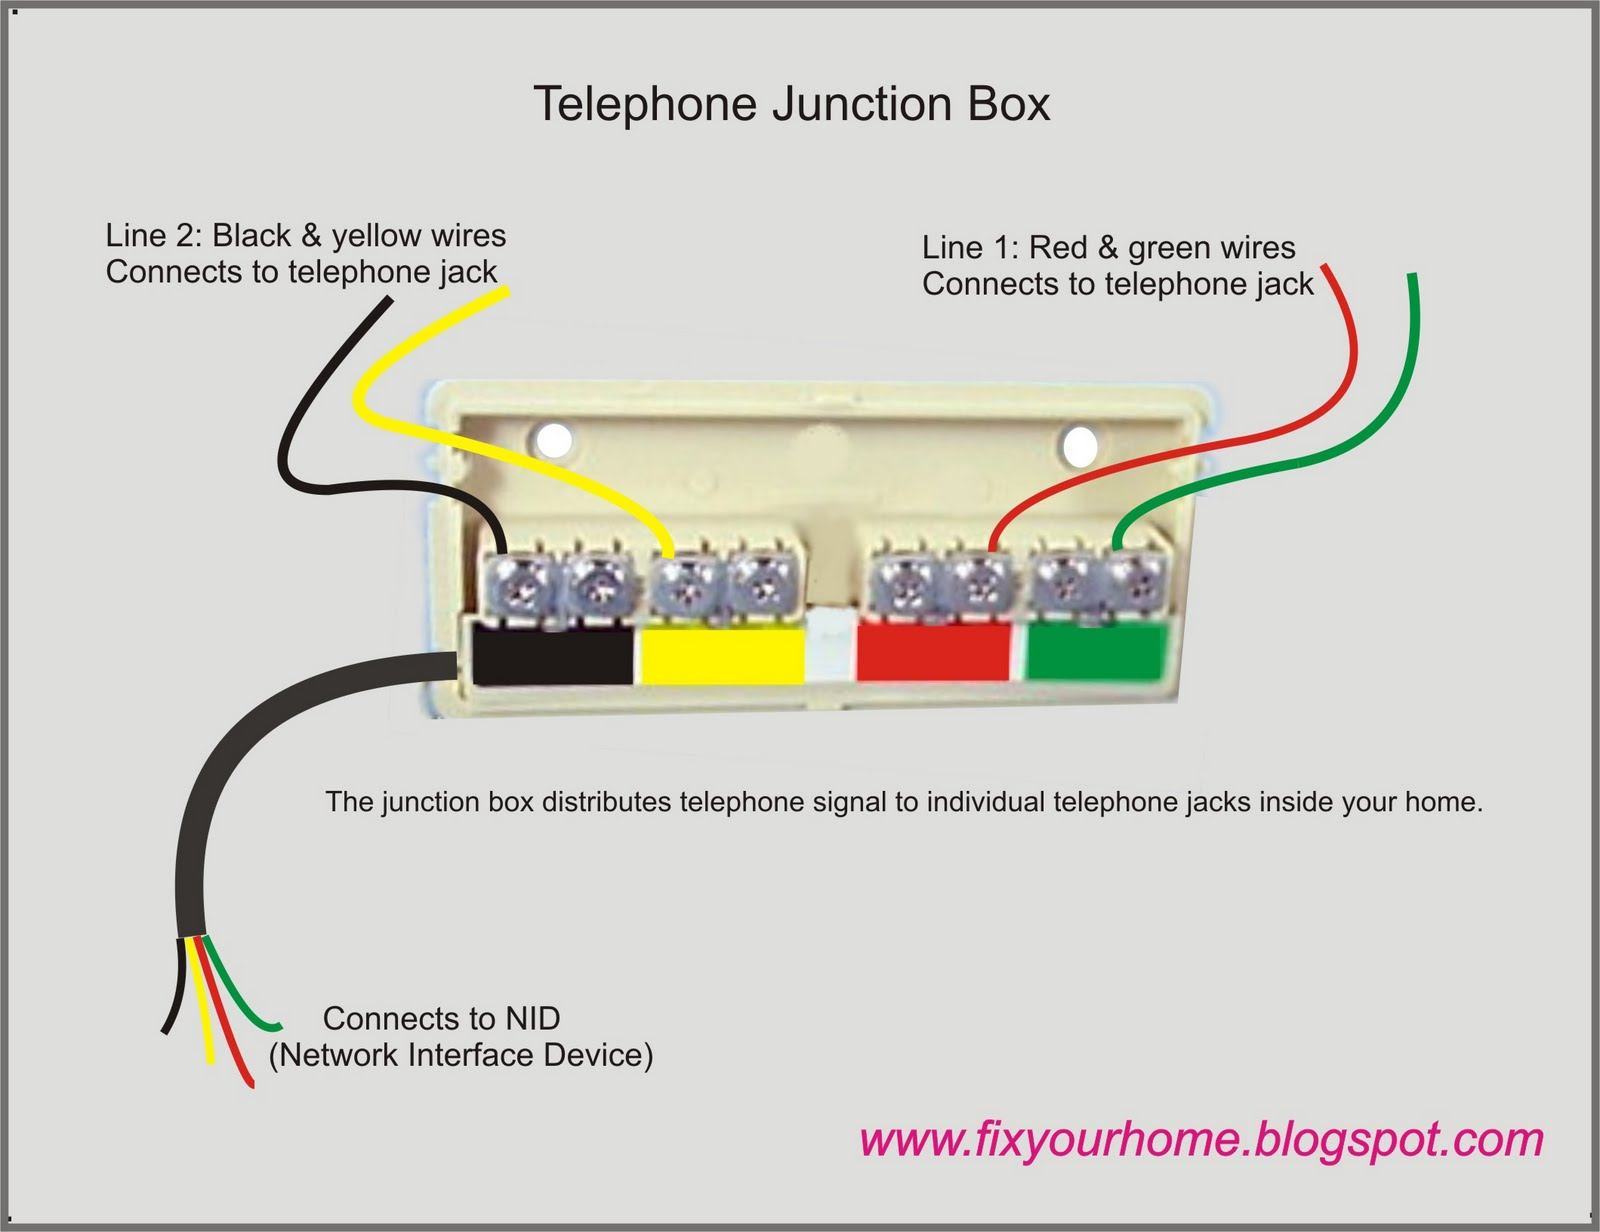 phone box wire diagram wiring diagram detailed diagram w telecommunications system business phone box wiring diagram [ 1600 x 1232 Pixel ]